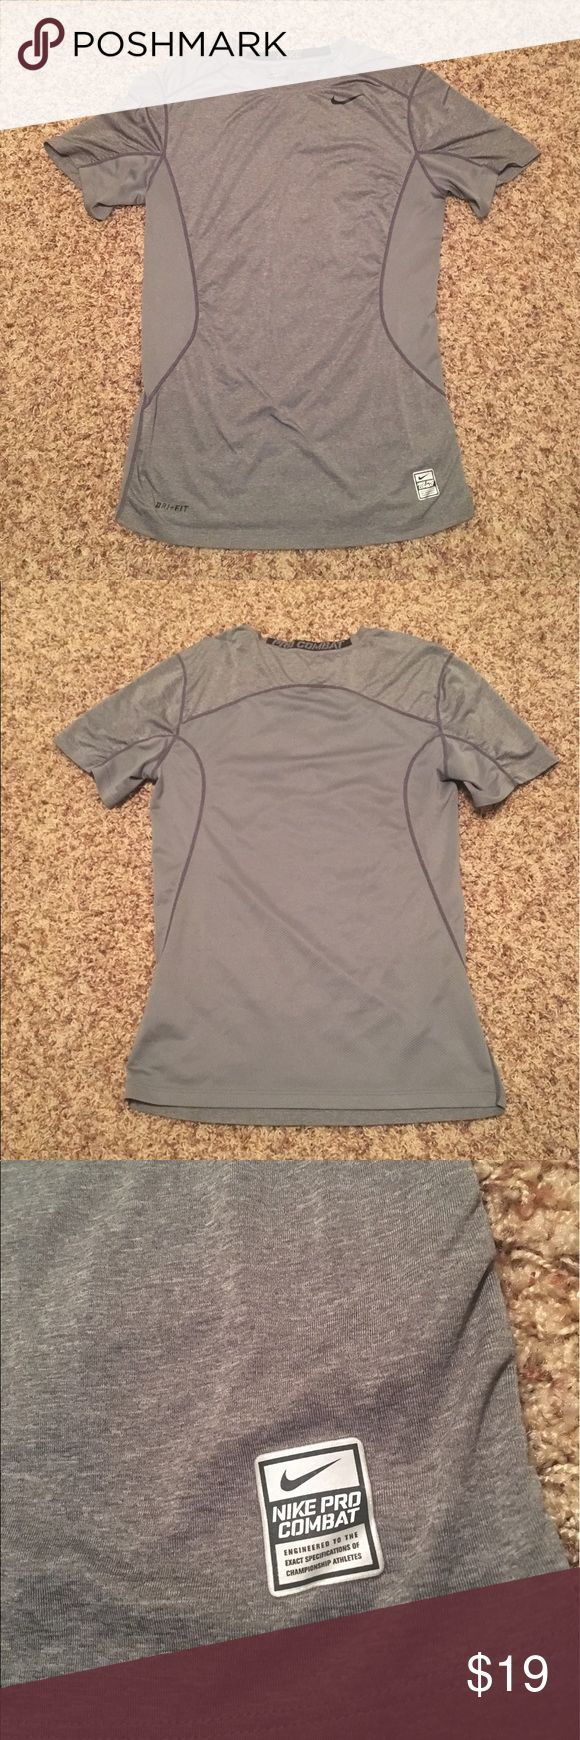 Gray NIKE PRO COMBAT FITTED shirt Gray Nike dri- fit shirt! In EXCELLENT USED CONDITION. pro combat & fitted. The back is mesh material as shown in a close up picture. Nike Shirts Tees - Short Sleeve